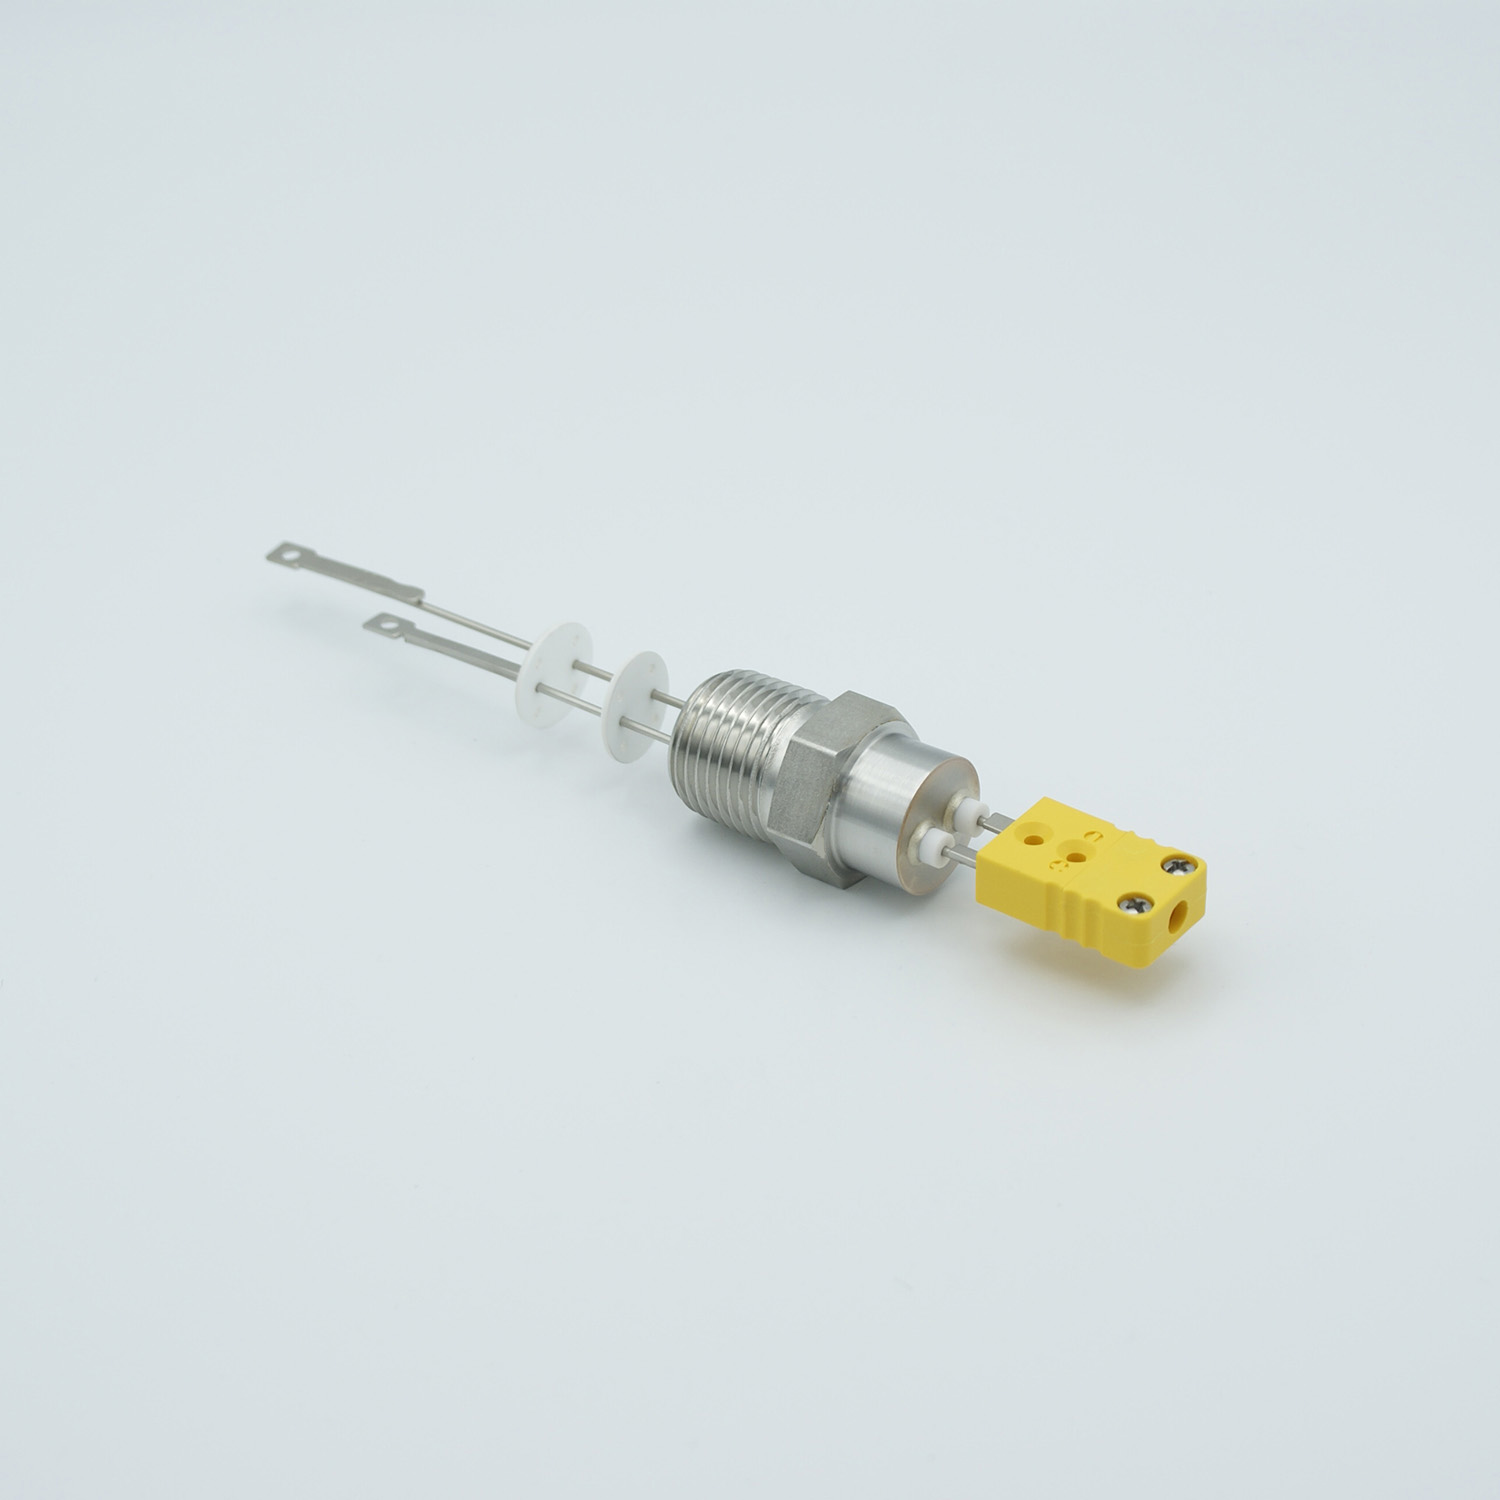 1 pair Thermocouple type-R or S feedthrough with both side connectors included, NPT 1/2